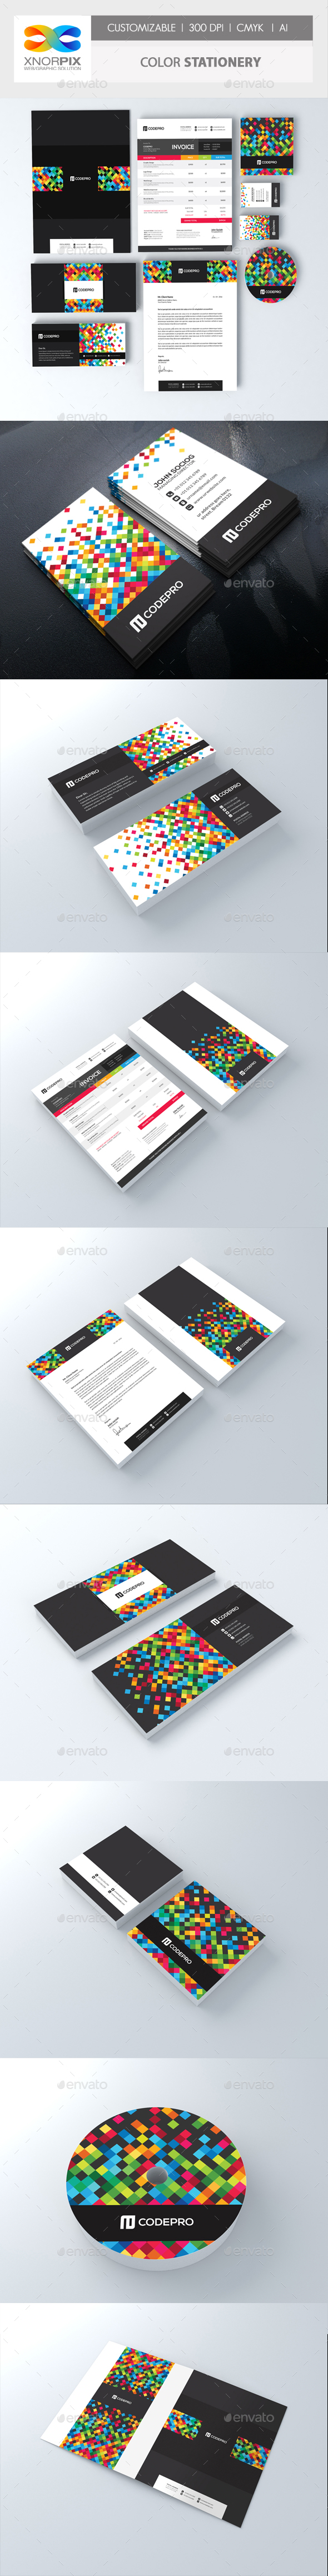 Color Corporate Identity - Stationery Print Templates